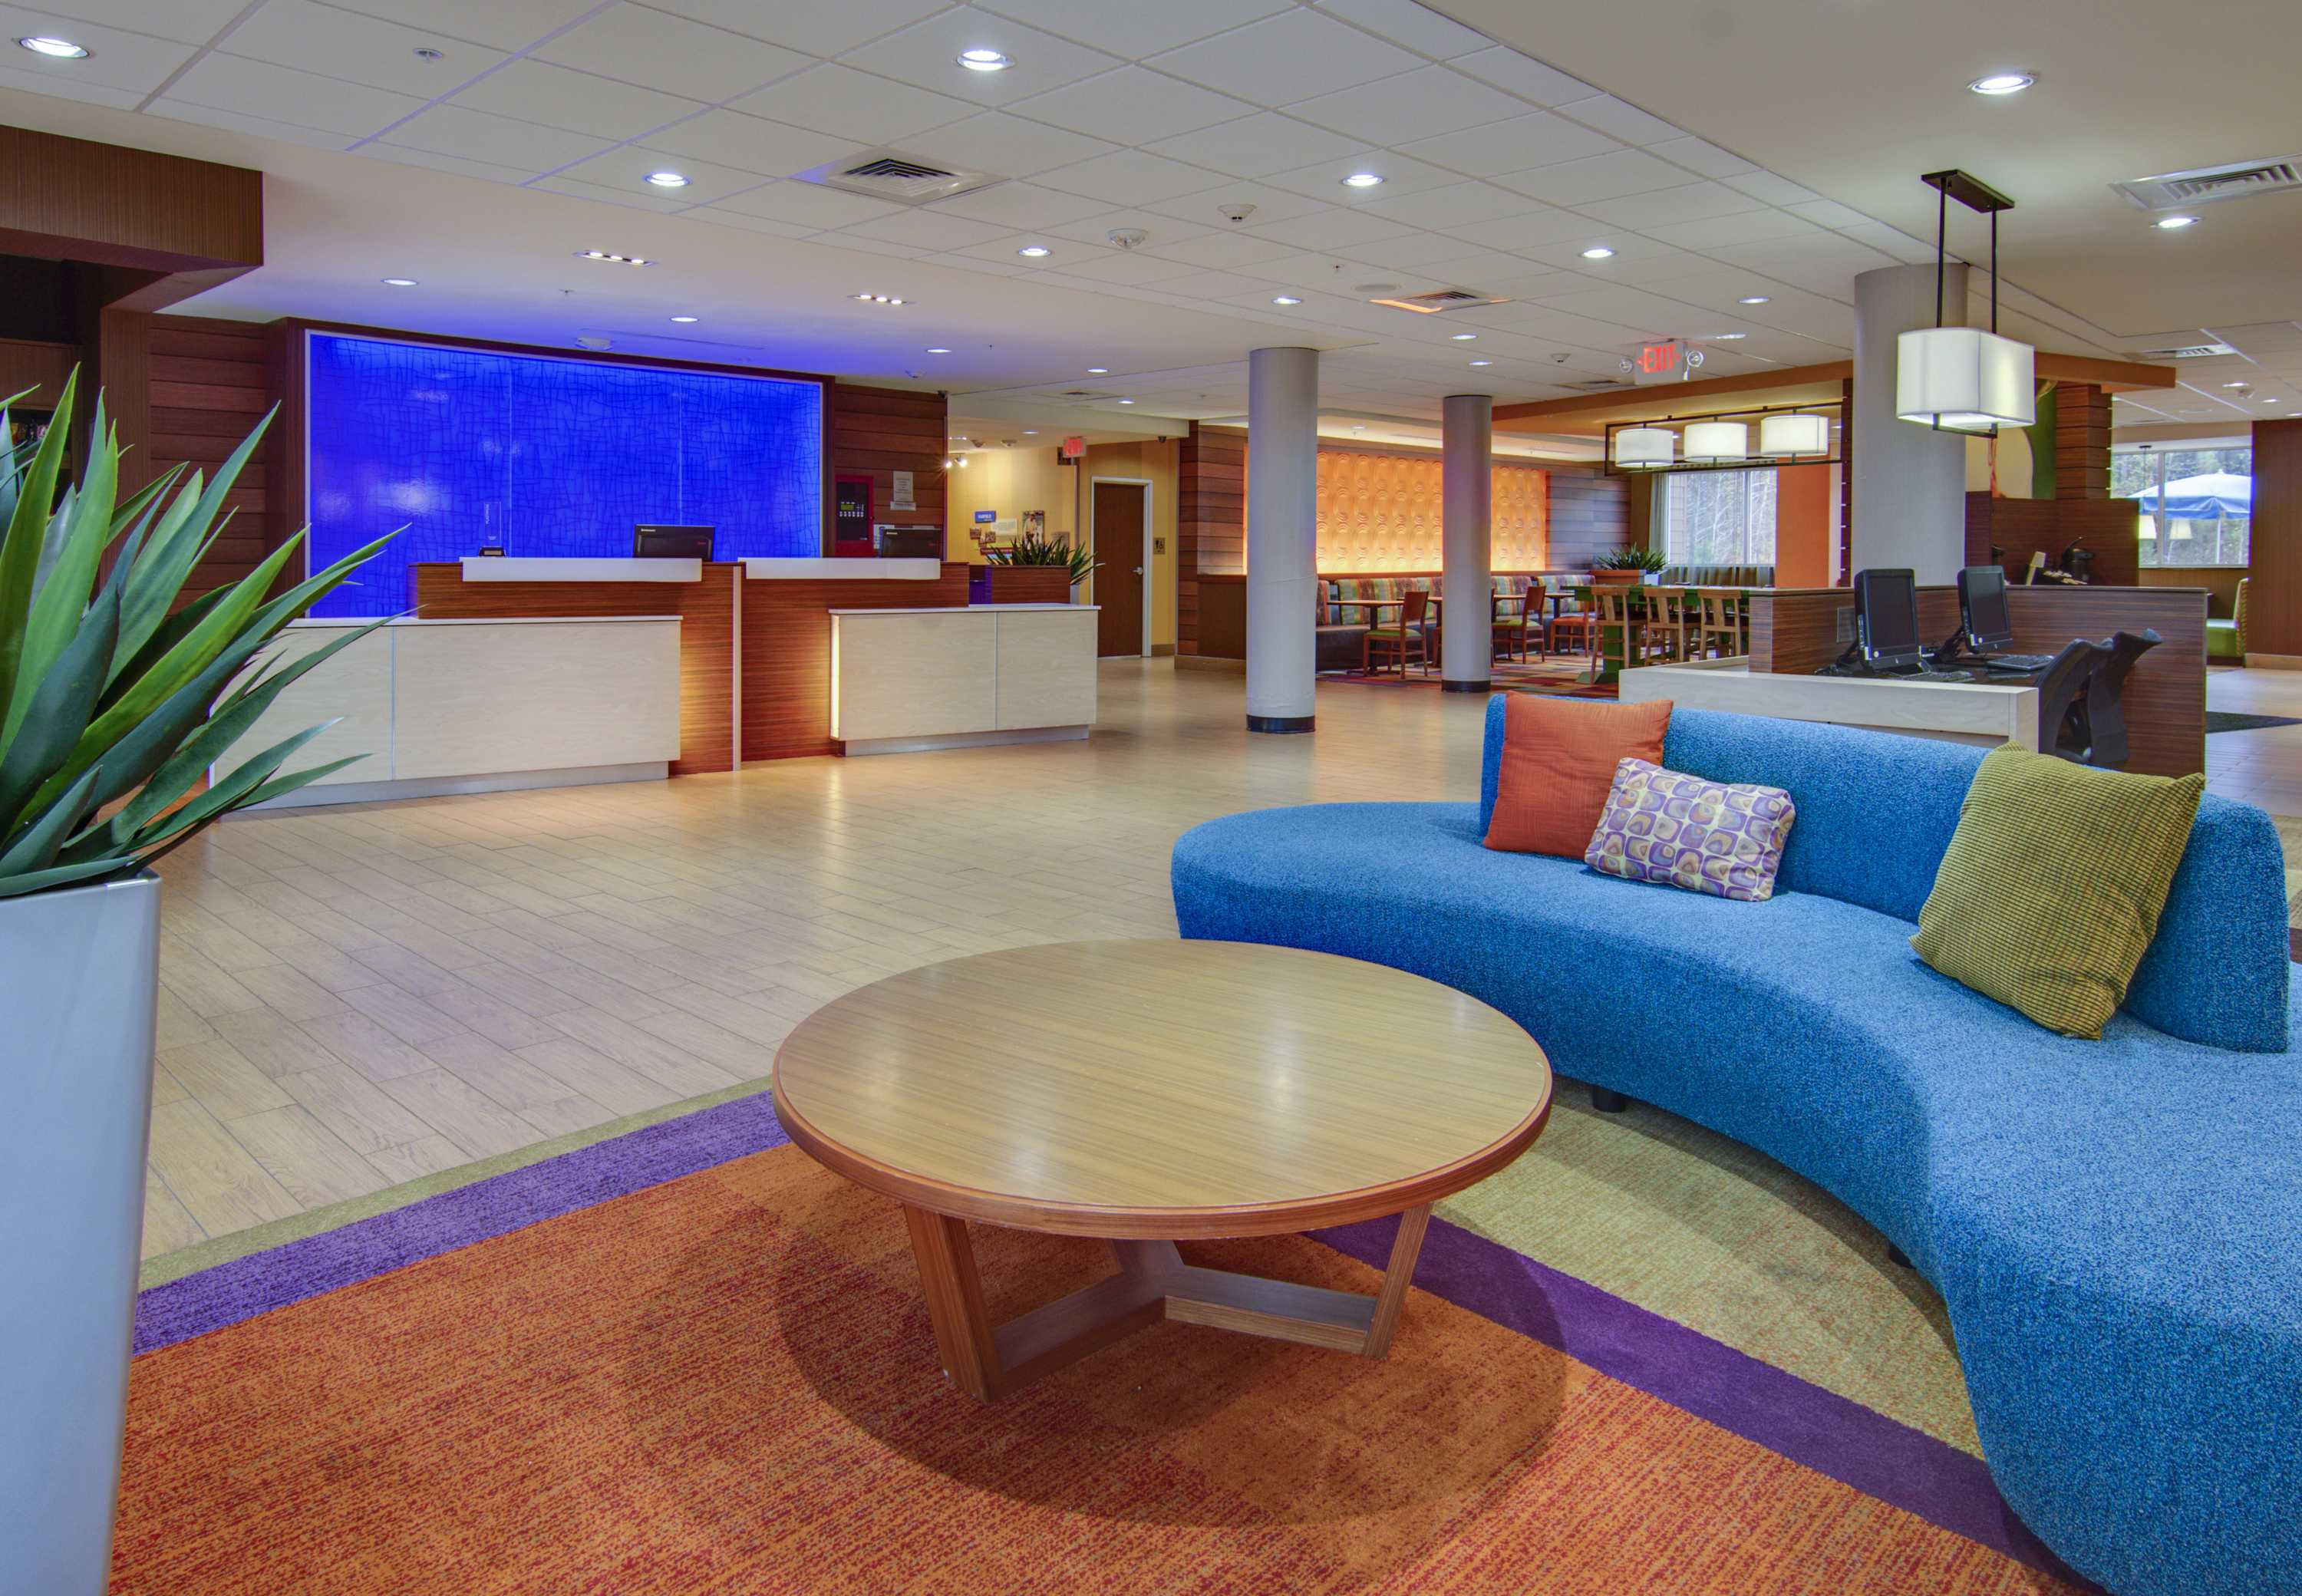 Fairfield Inn & Suites by Marriott Natchitoches image 1